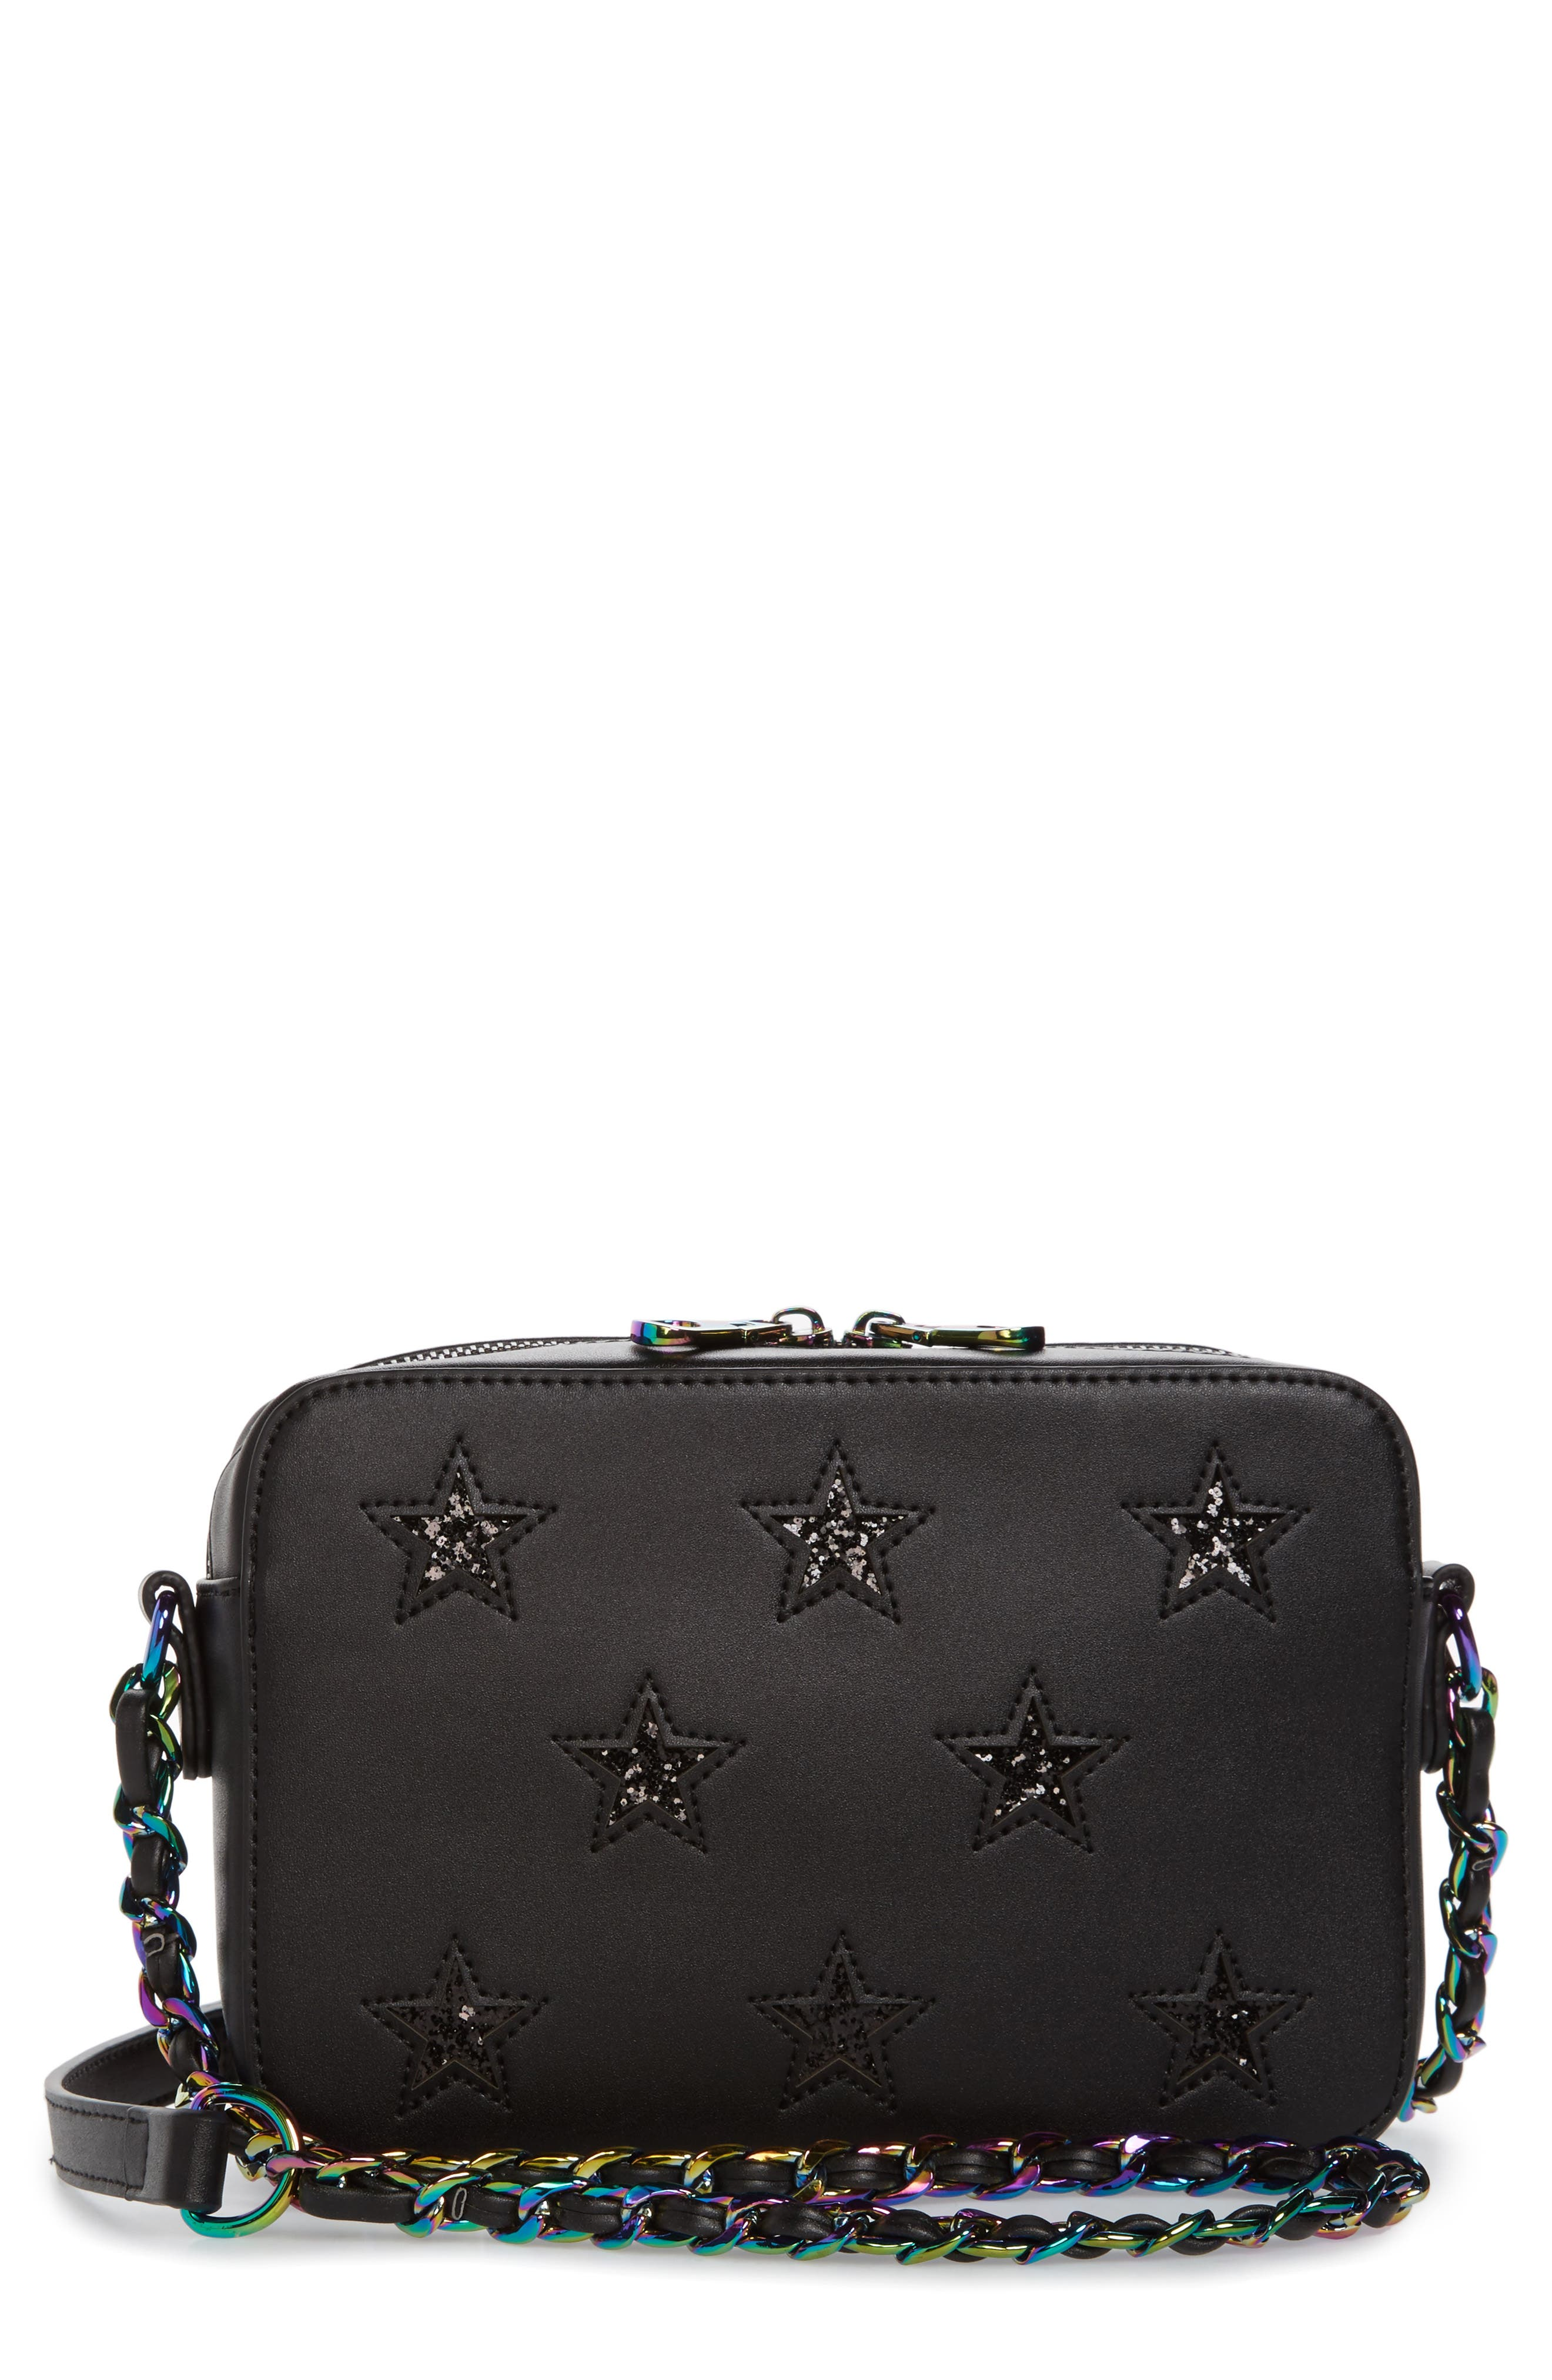 Alternate Image 1 Selected - Chelsea28 Bella Glitter Star Faux Leather Crossbody Bag